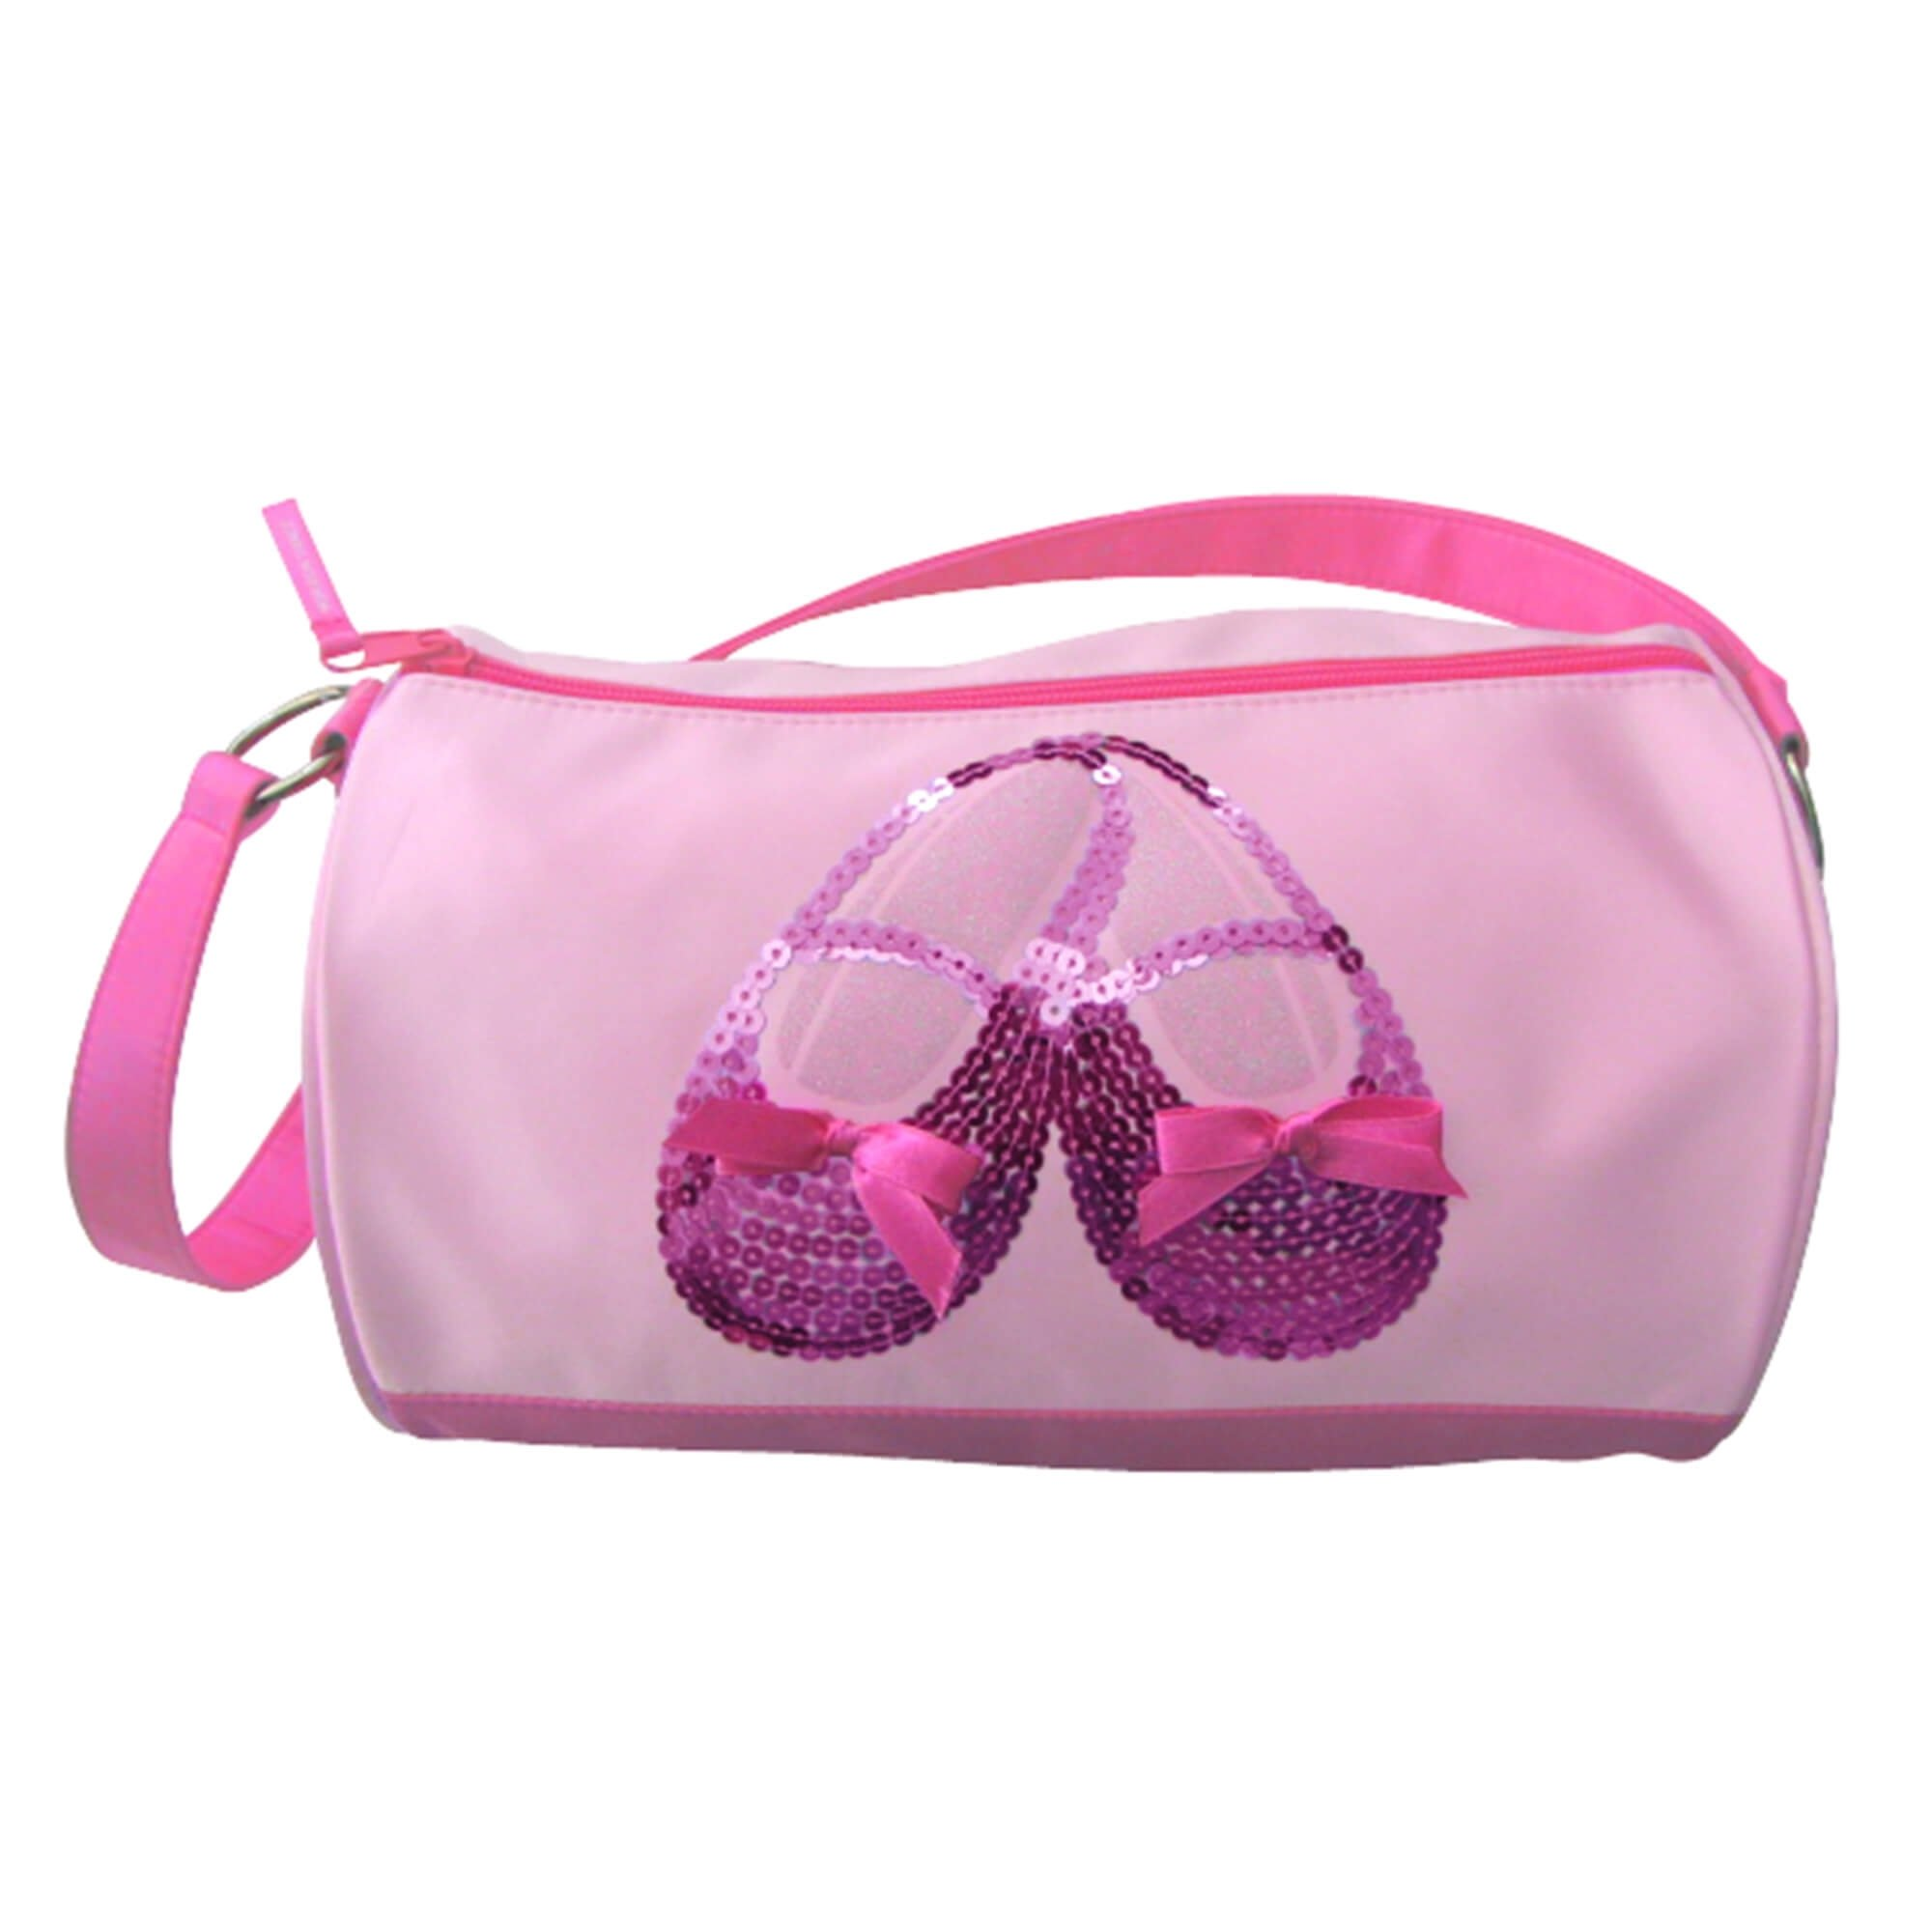 Horizon Dance Satin & Sequins Ballet Shoes Duffel